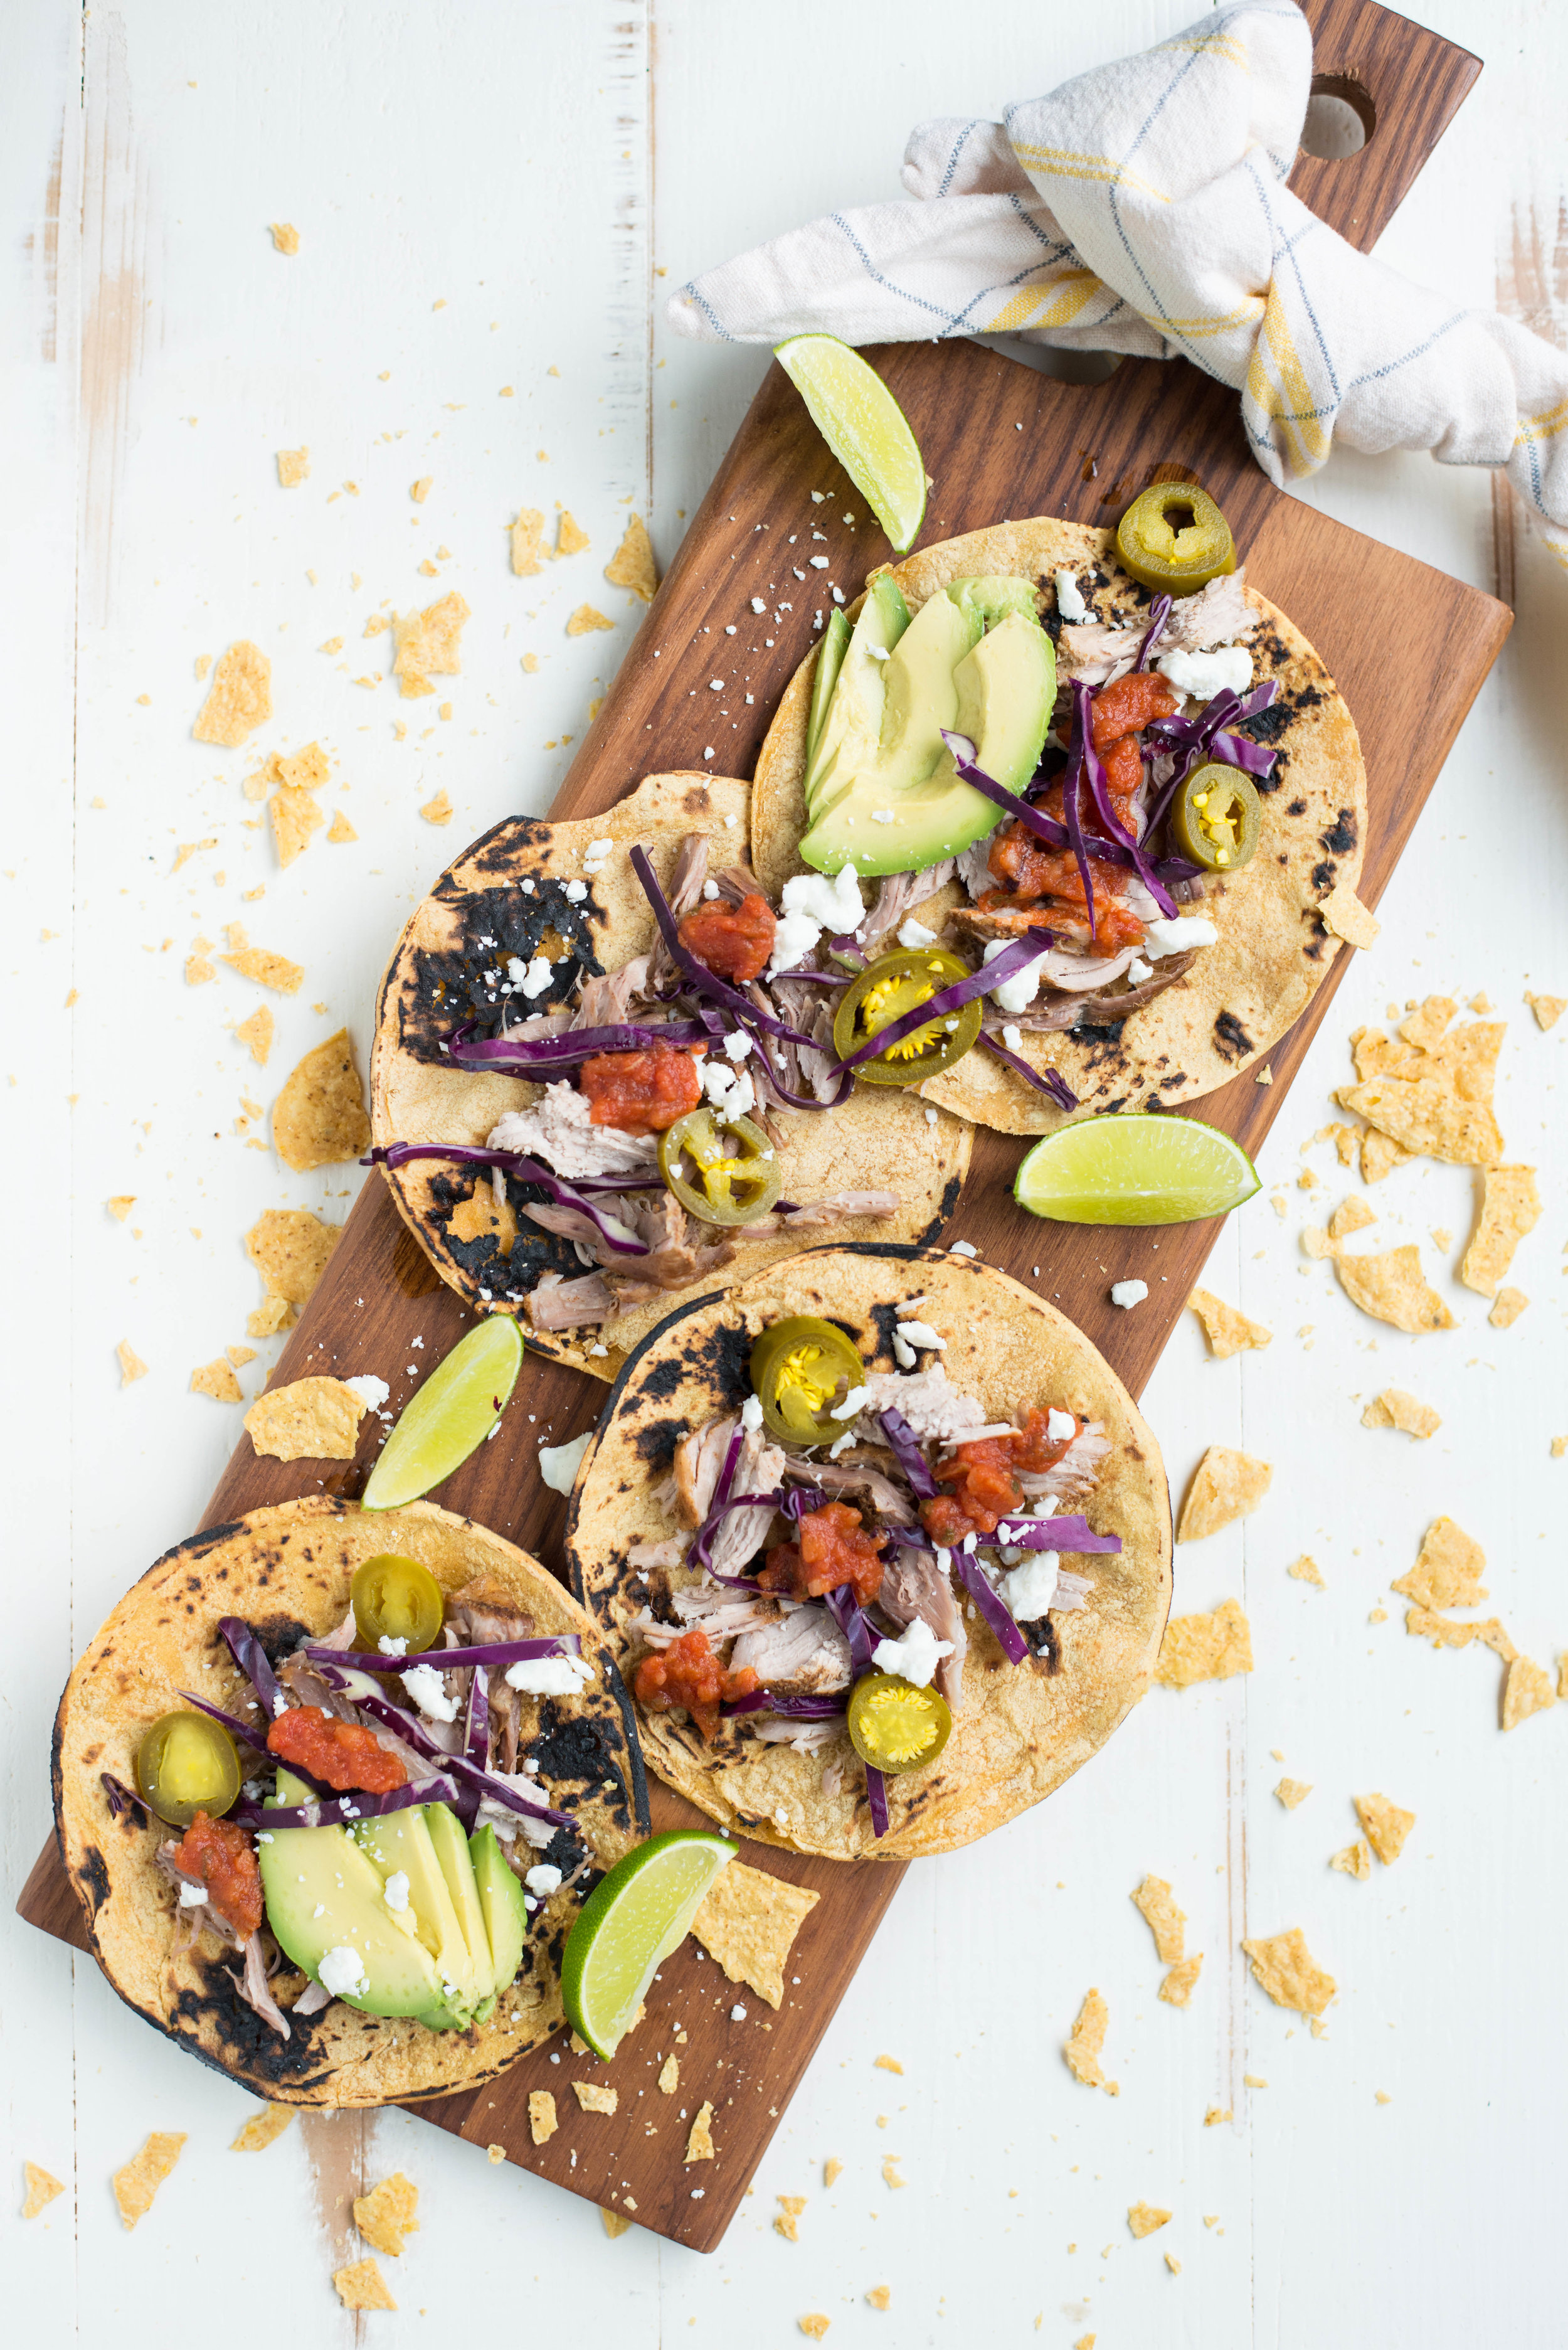 corn carnitas tacos on wood board with tortillas chips on white table